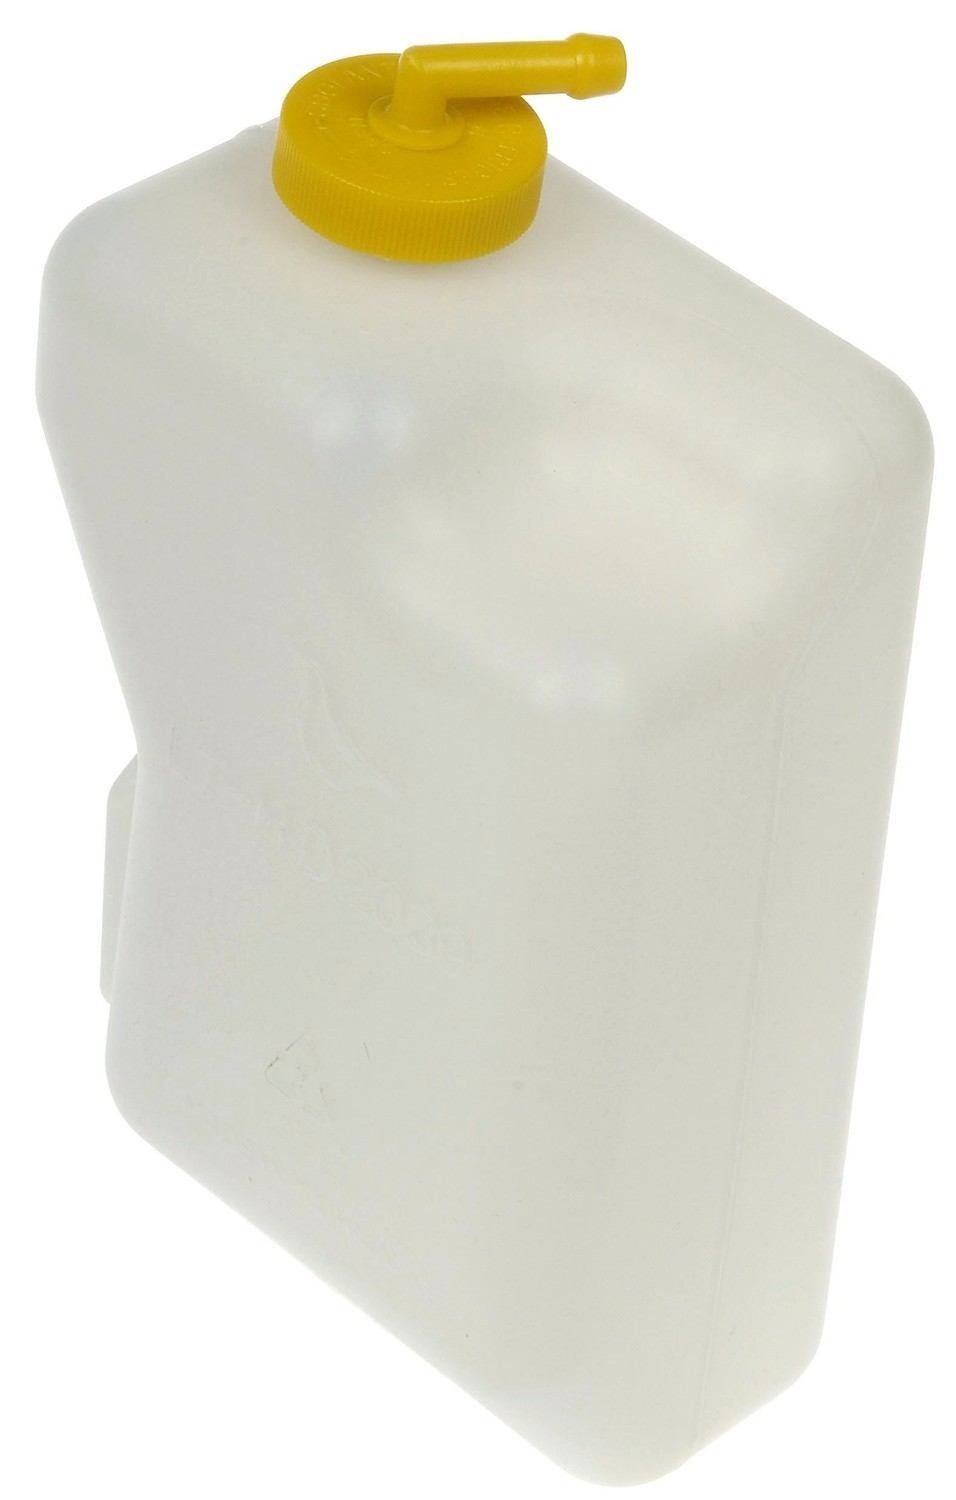 DORMAN OE SOLUTIONS - Engine Coolant Recovery Tank - DRE 603-292